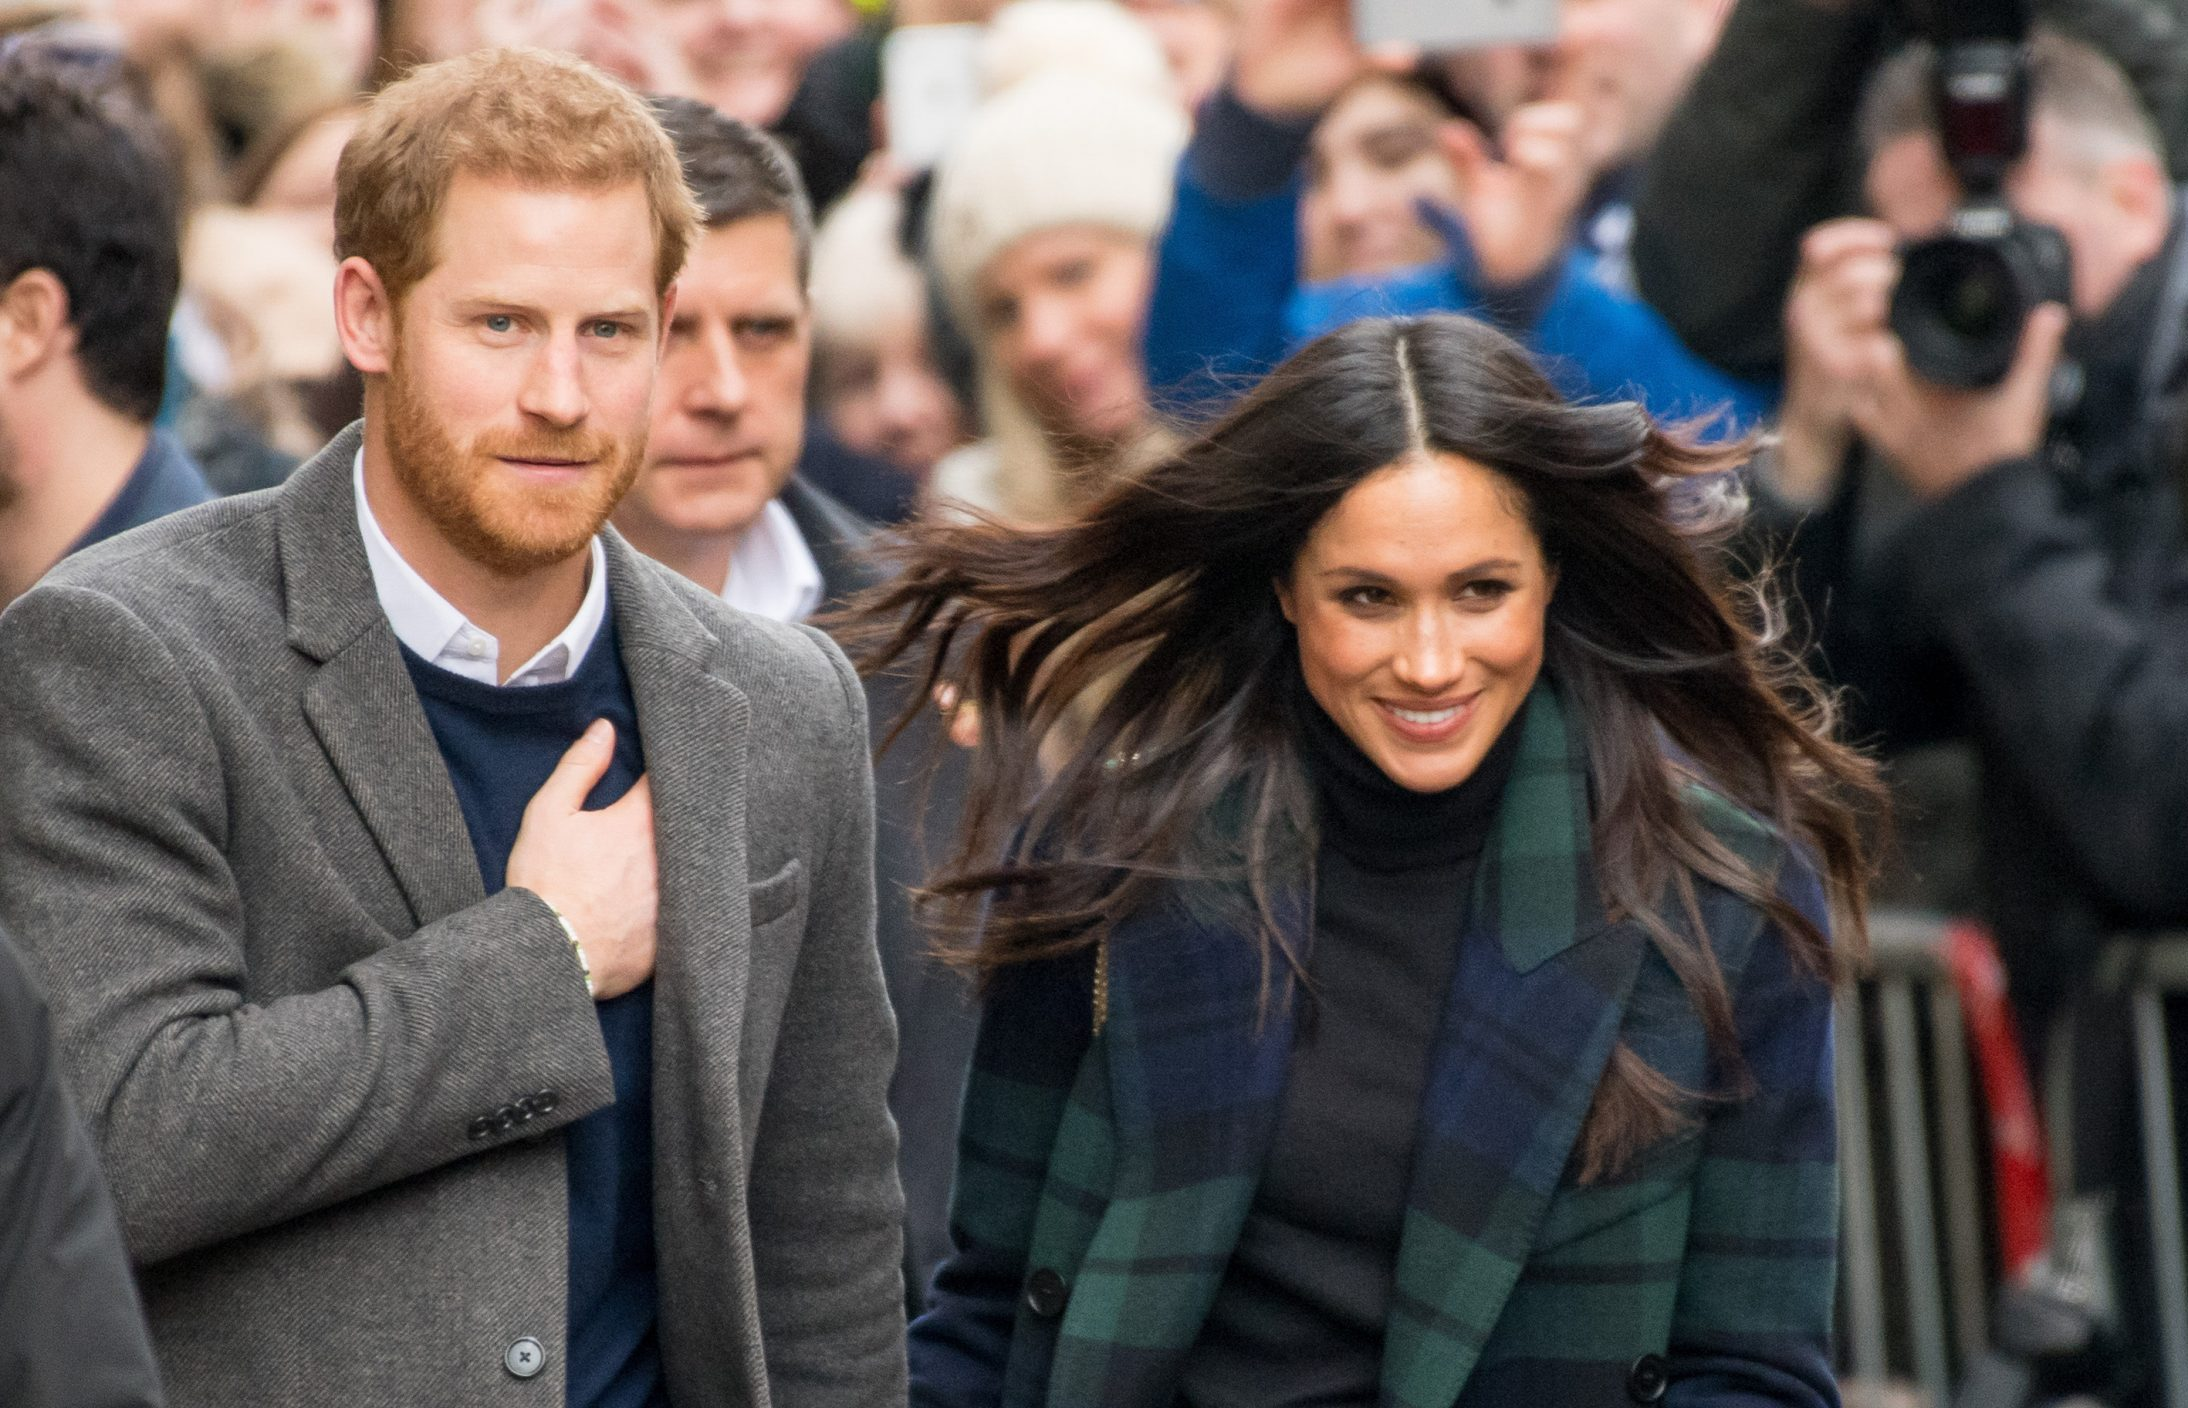 Lorraine brands Harry and Meghan 'out of touch' as she praises 'natural' Cambridges